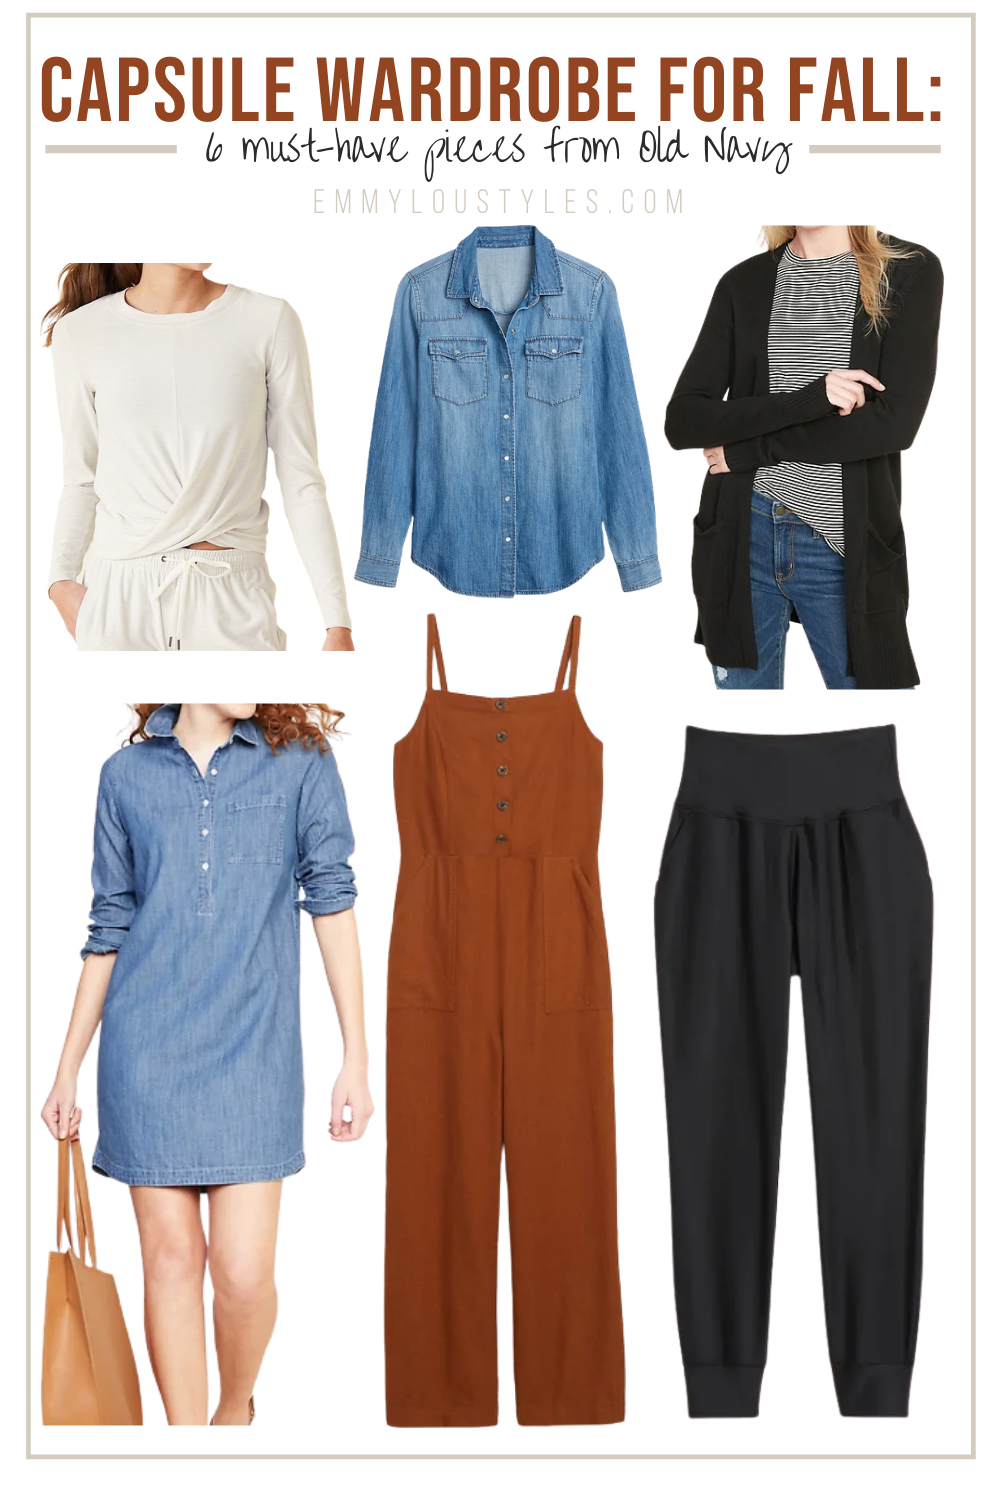 fall capsule wardrobe old navy must-haves